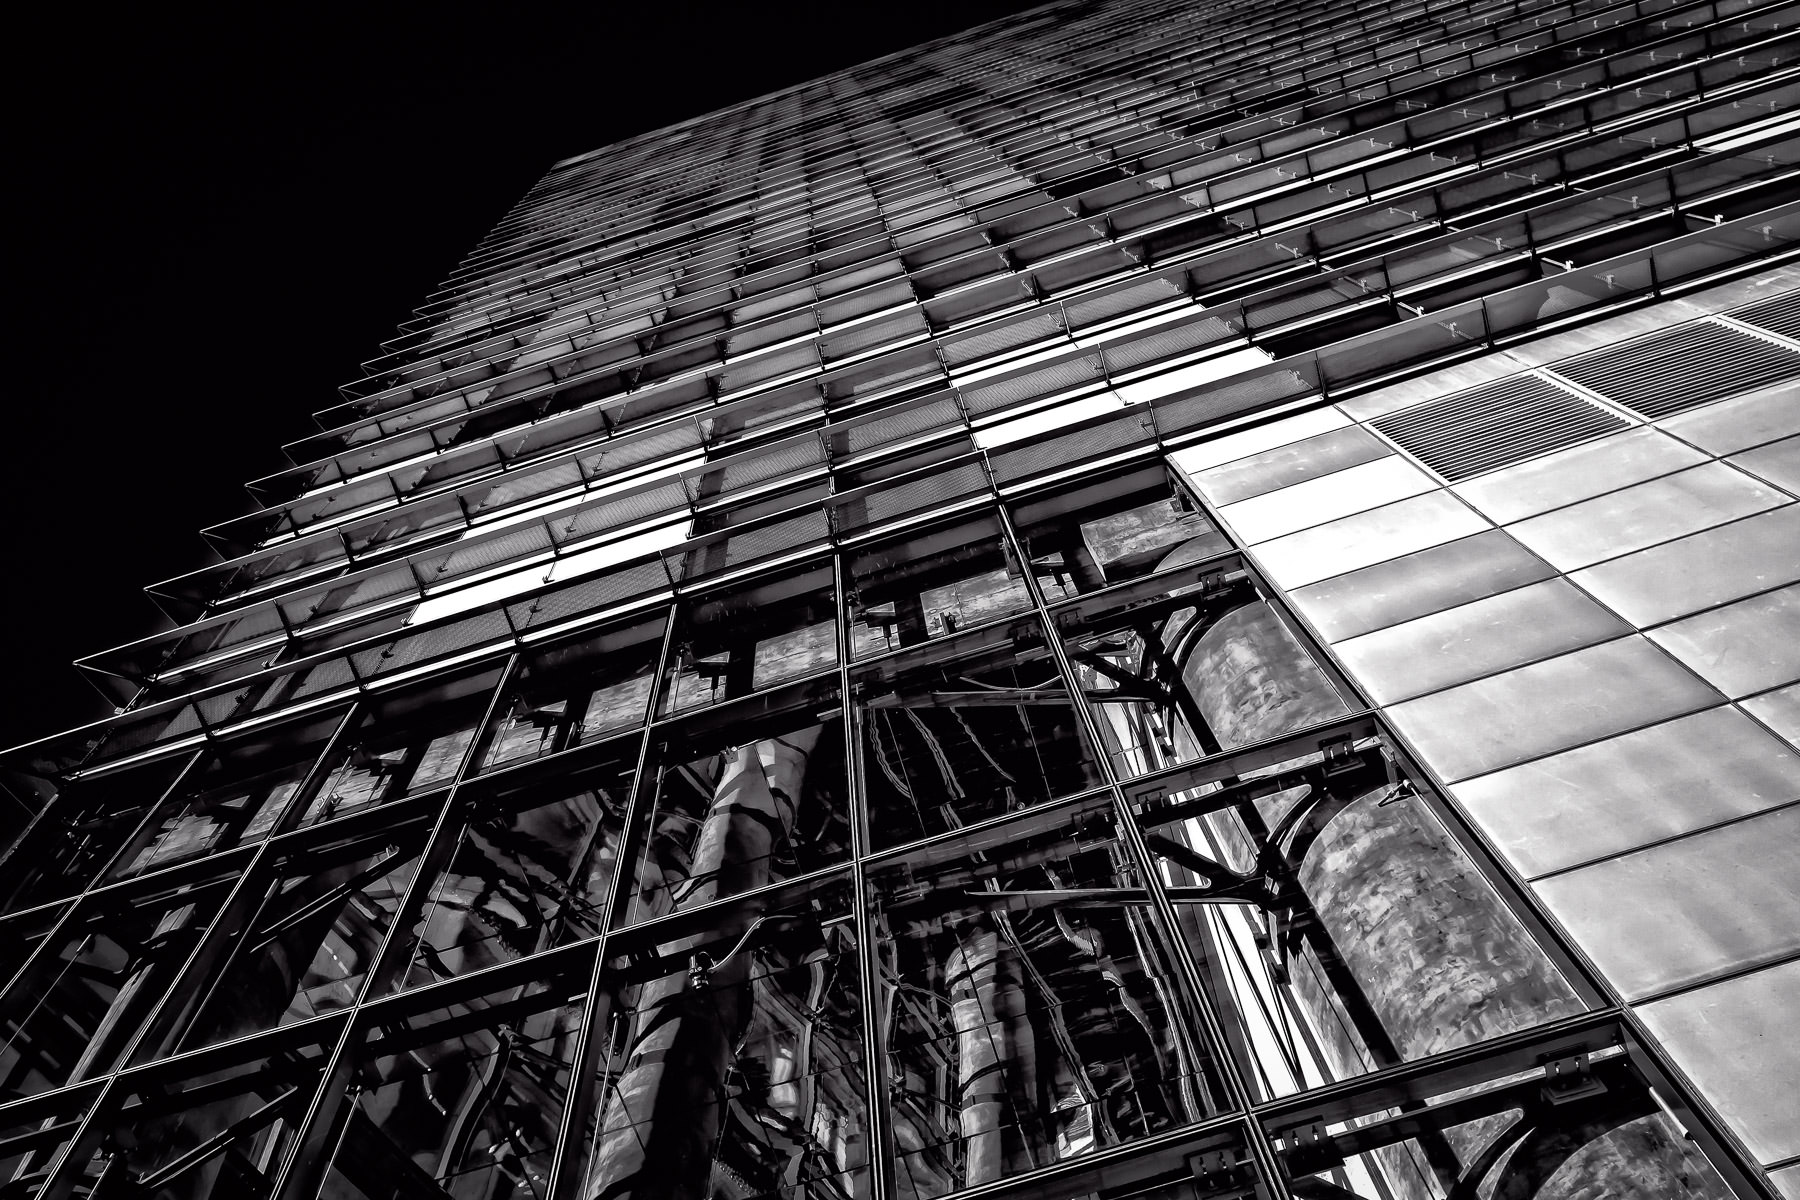 The inner structure of the eastern-most Veer Tower is exposed through multi-story windows in the building's lobby at Las Vegas' CityCenter.